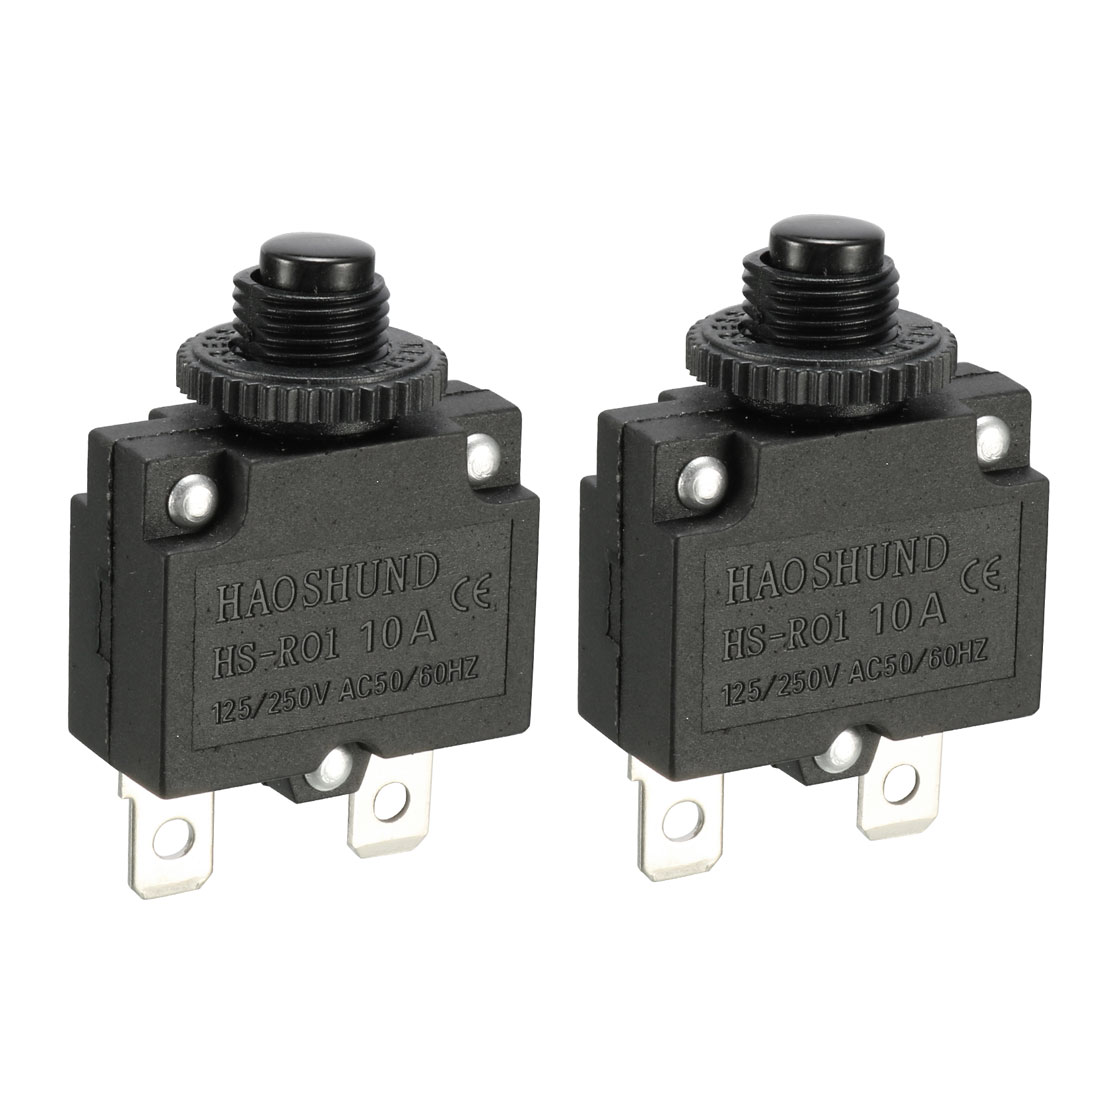 Air Compressor 10A ST-101E Overload Protection Circuit Breaker 2 Pcs